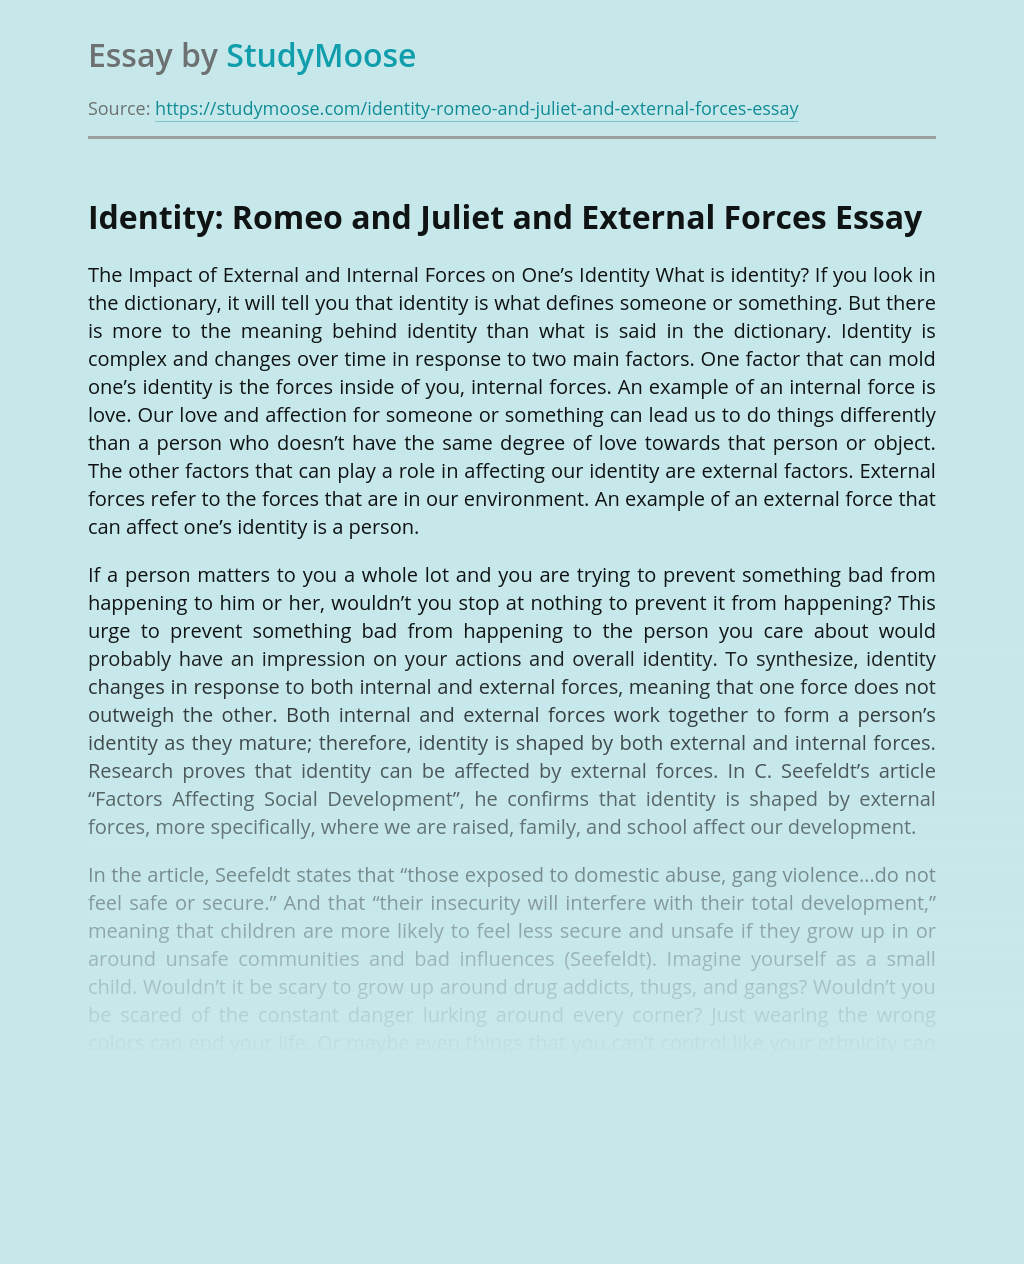 Identity: Romeo and Juliet and External Forces